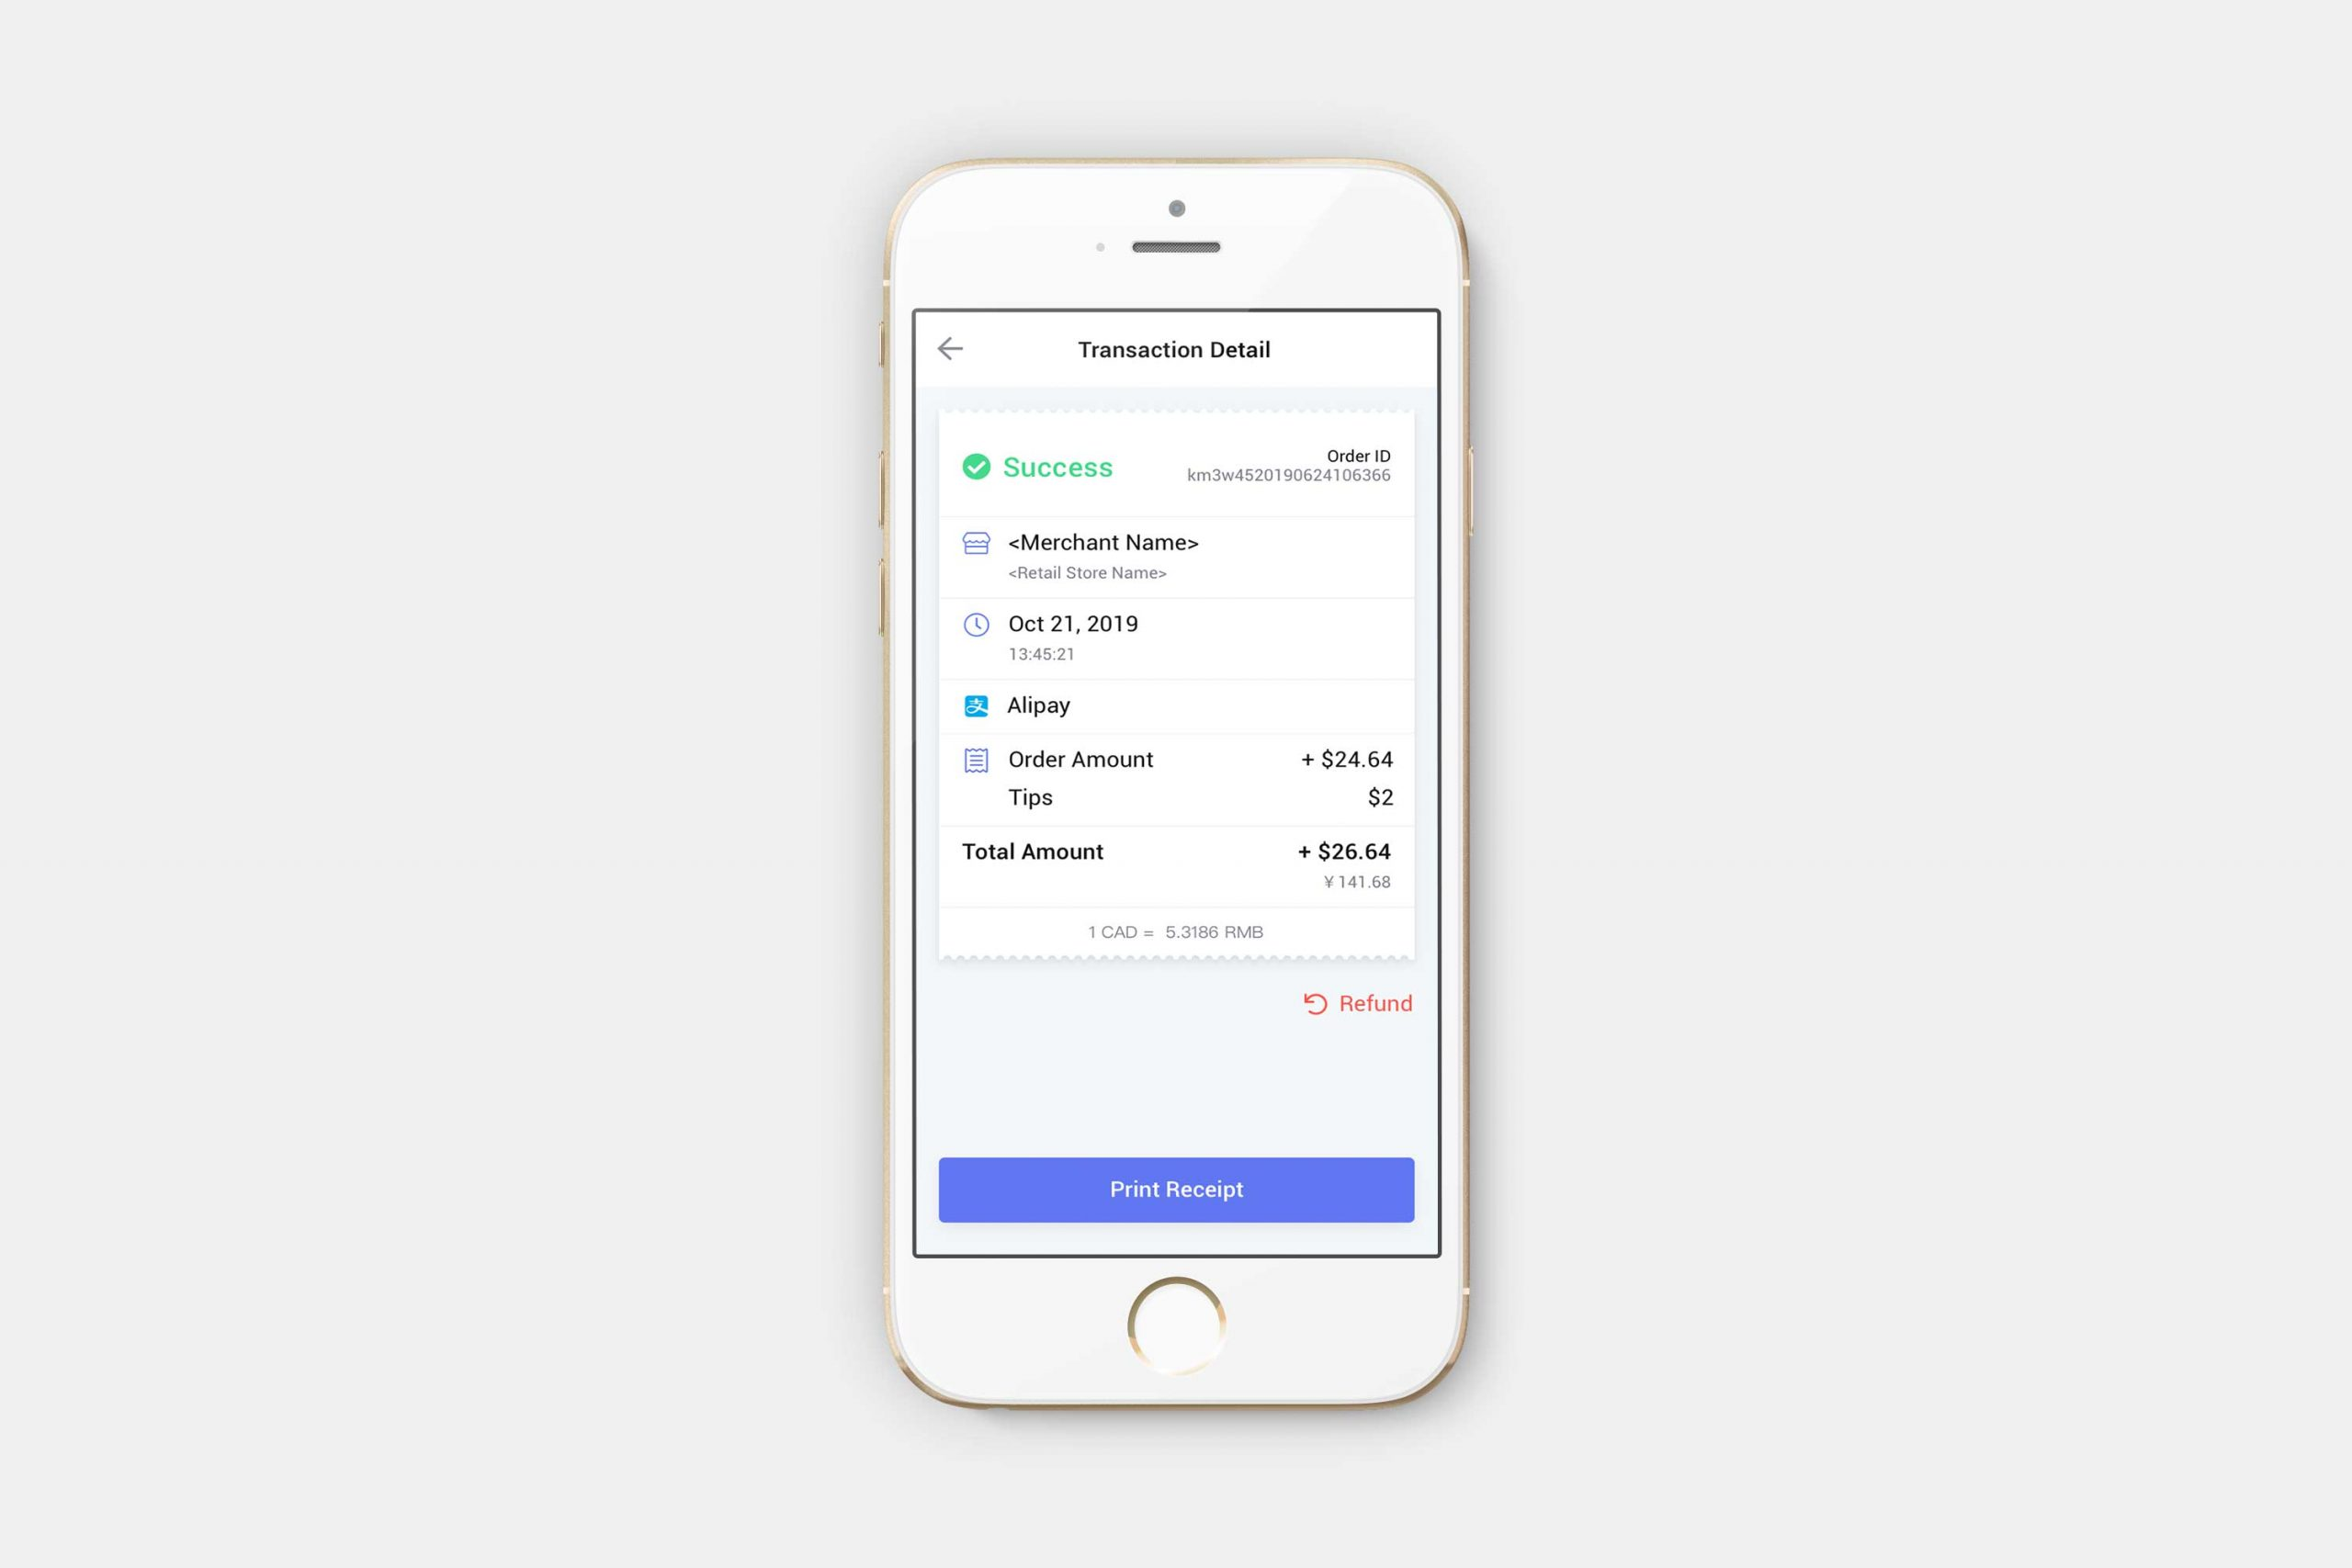 app_transaction-detail